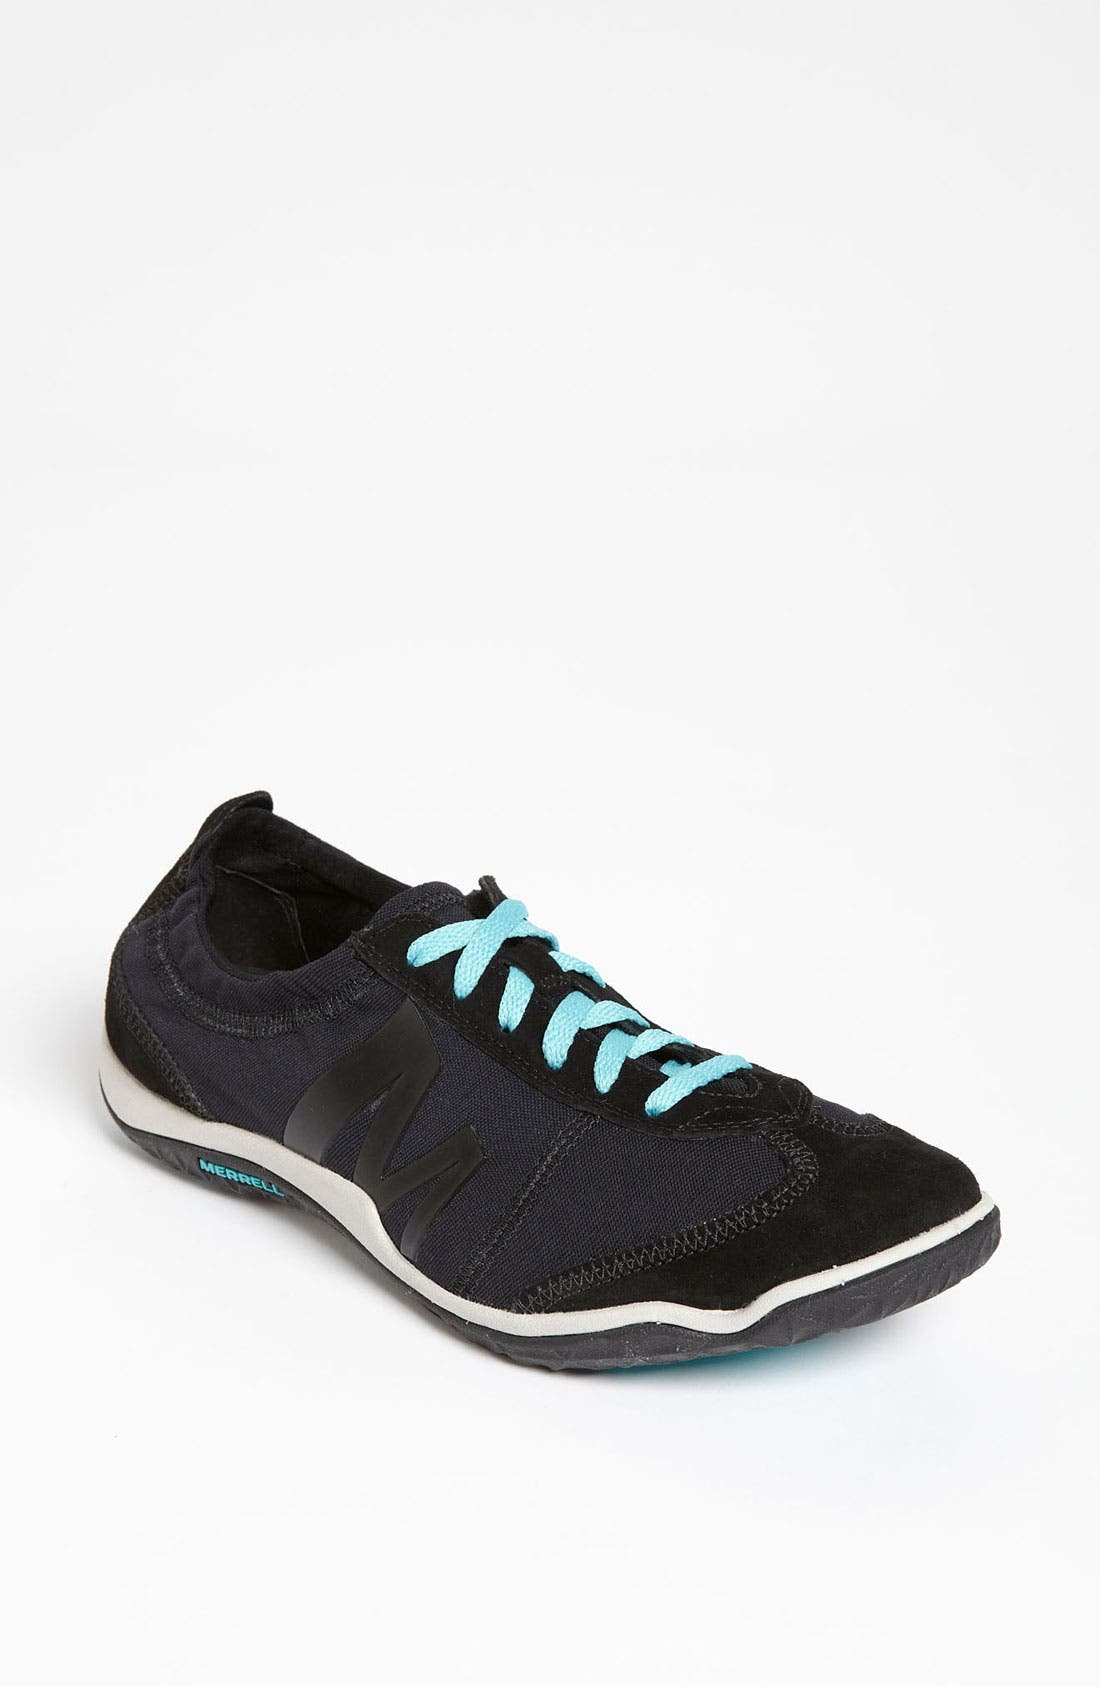 Alternate Image 1 Selected - Merrell 'Lorelei Twine' Sneaker (Women)